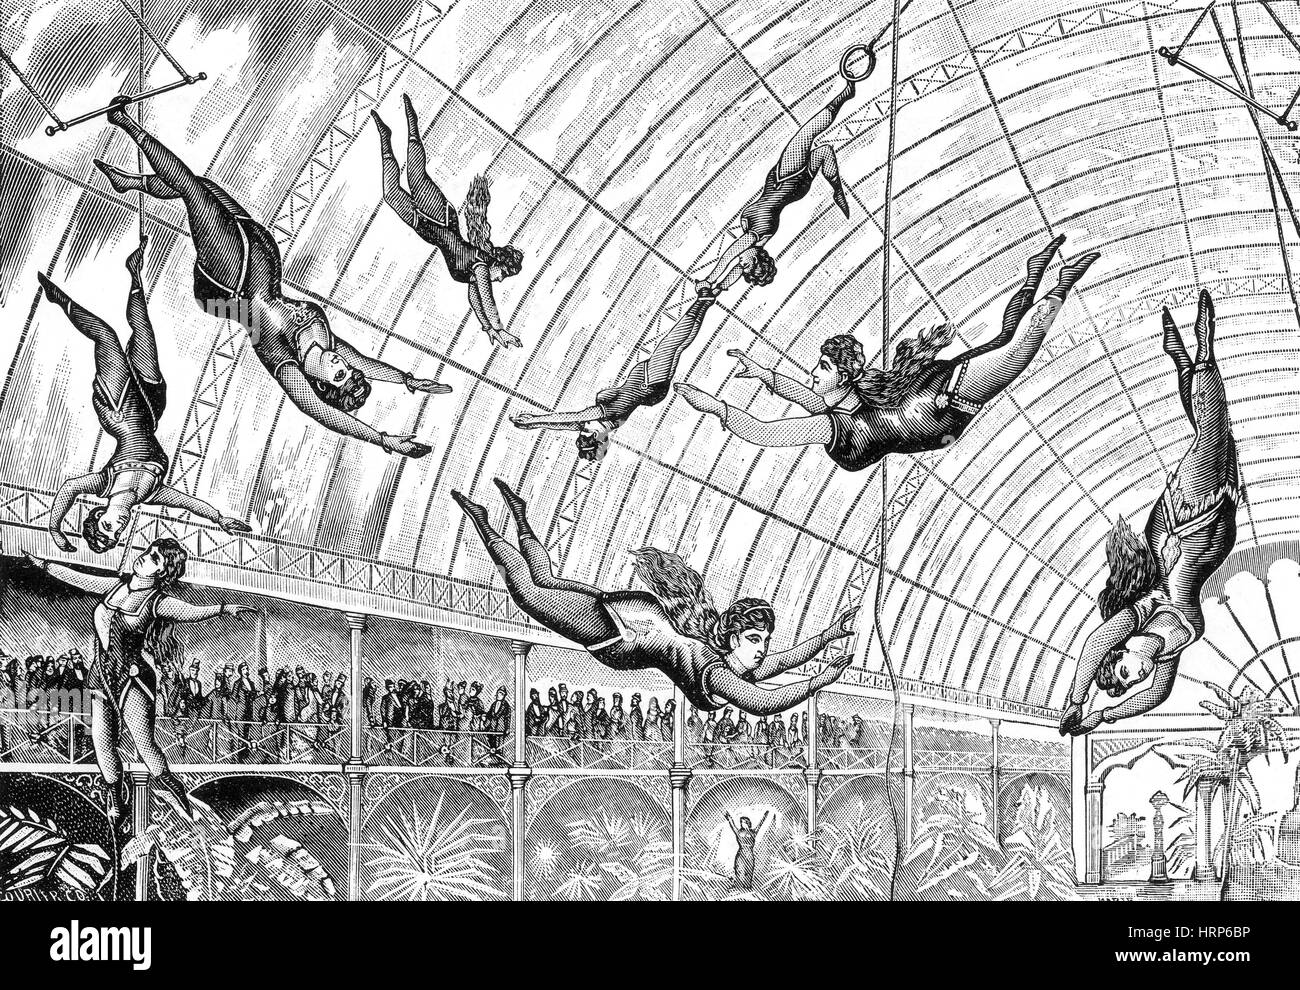 Circus Trapeze Act, 1890s - Stock Image